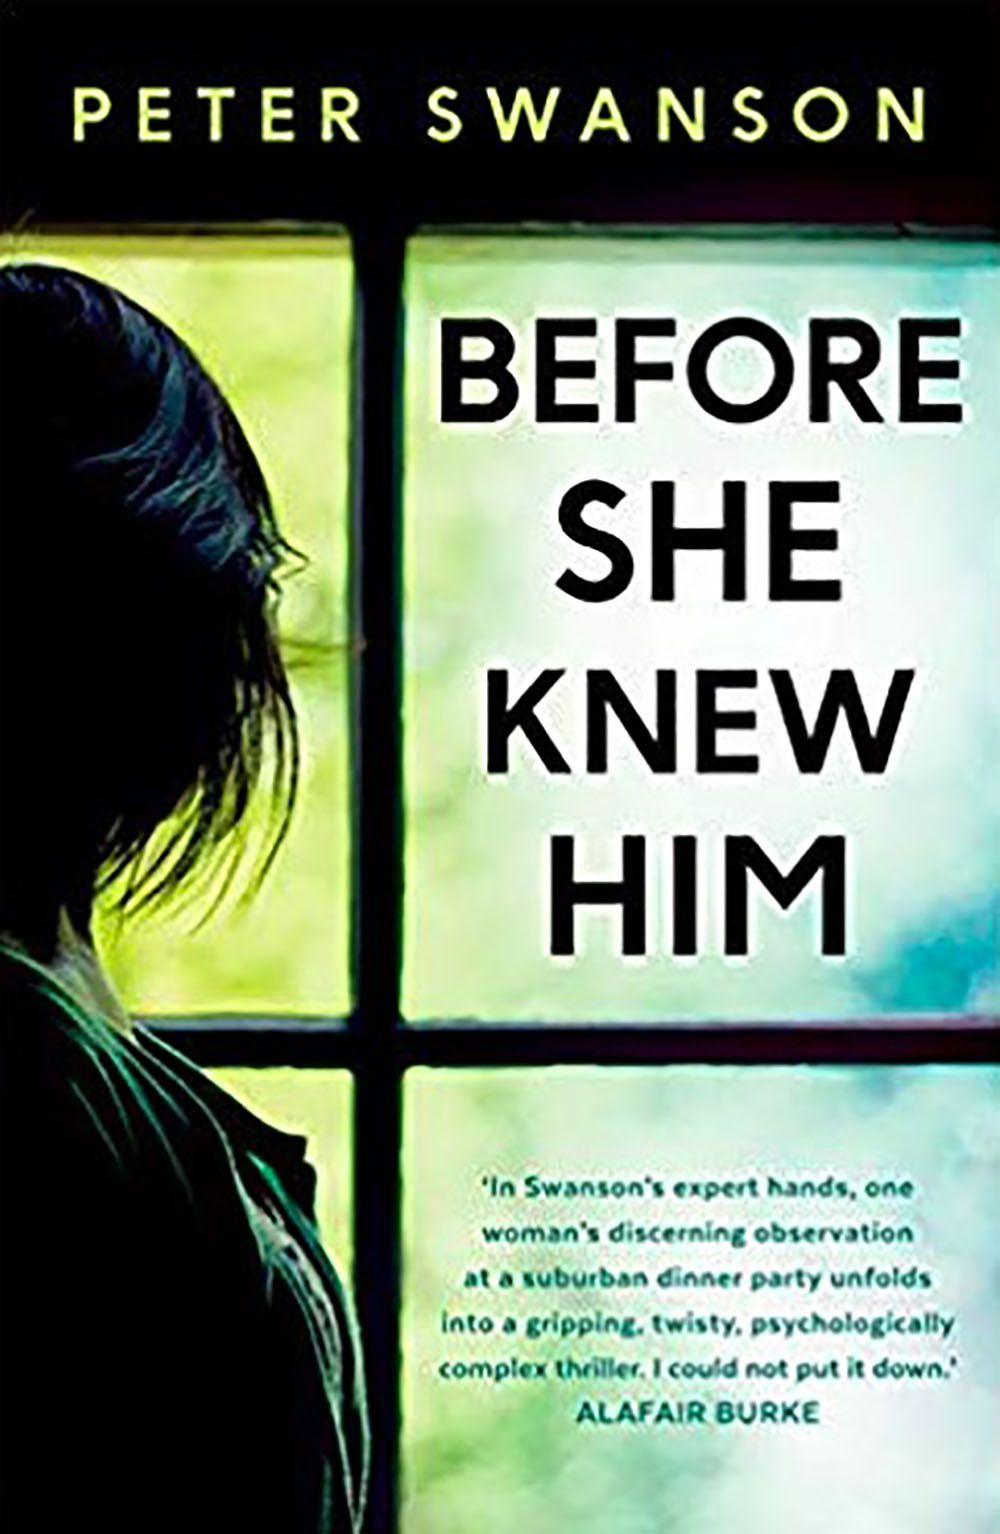 new good books to read, best books to read, good books to read, best selling books, best books 2019, book review, books to read, new books, march 2019, books, new novel releases